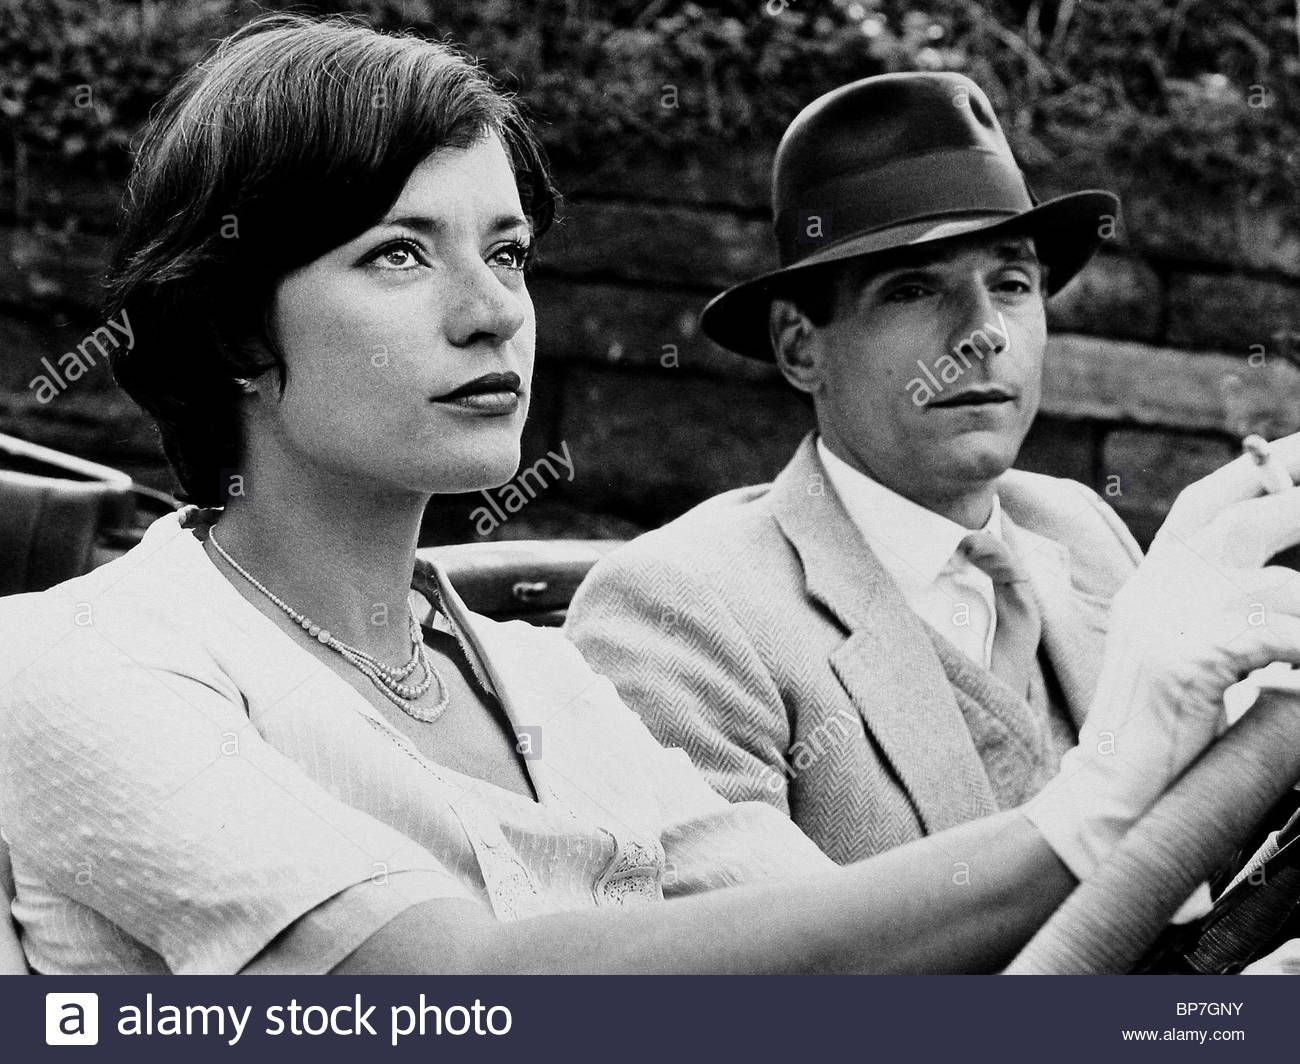 Download This Stock Image Diana Quick Jeremy Irons Brideshead